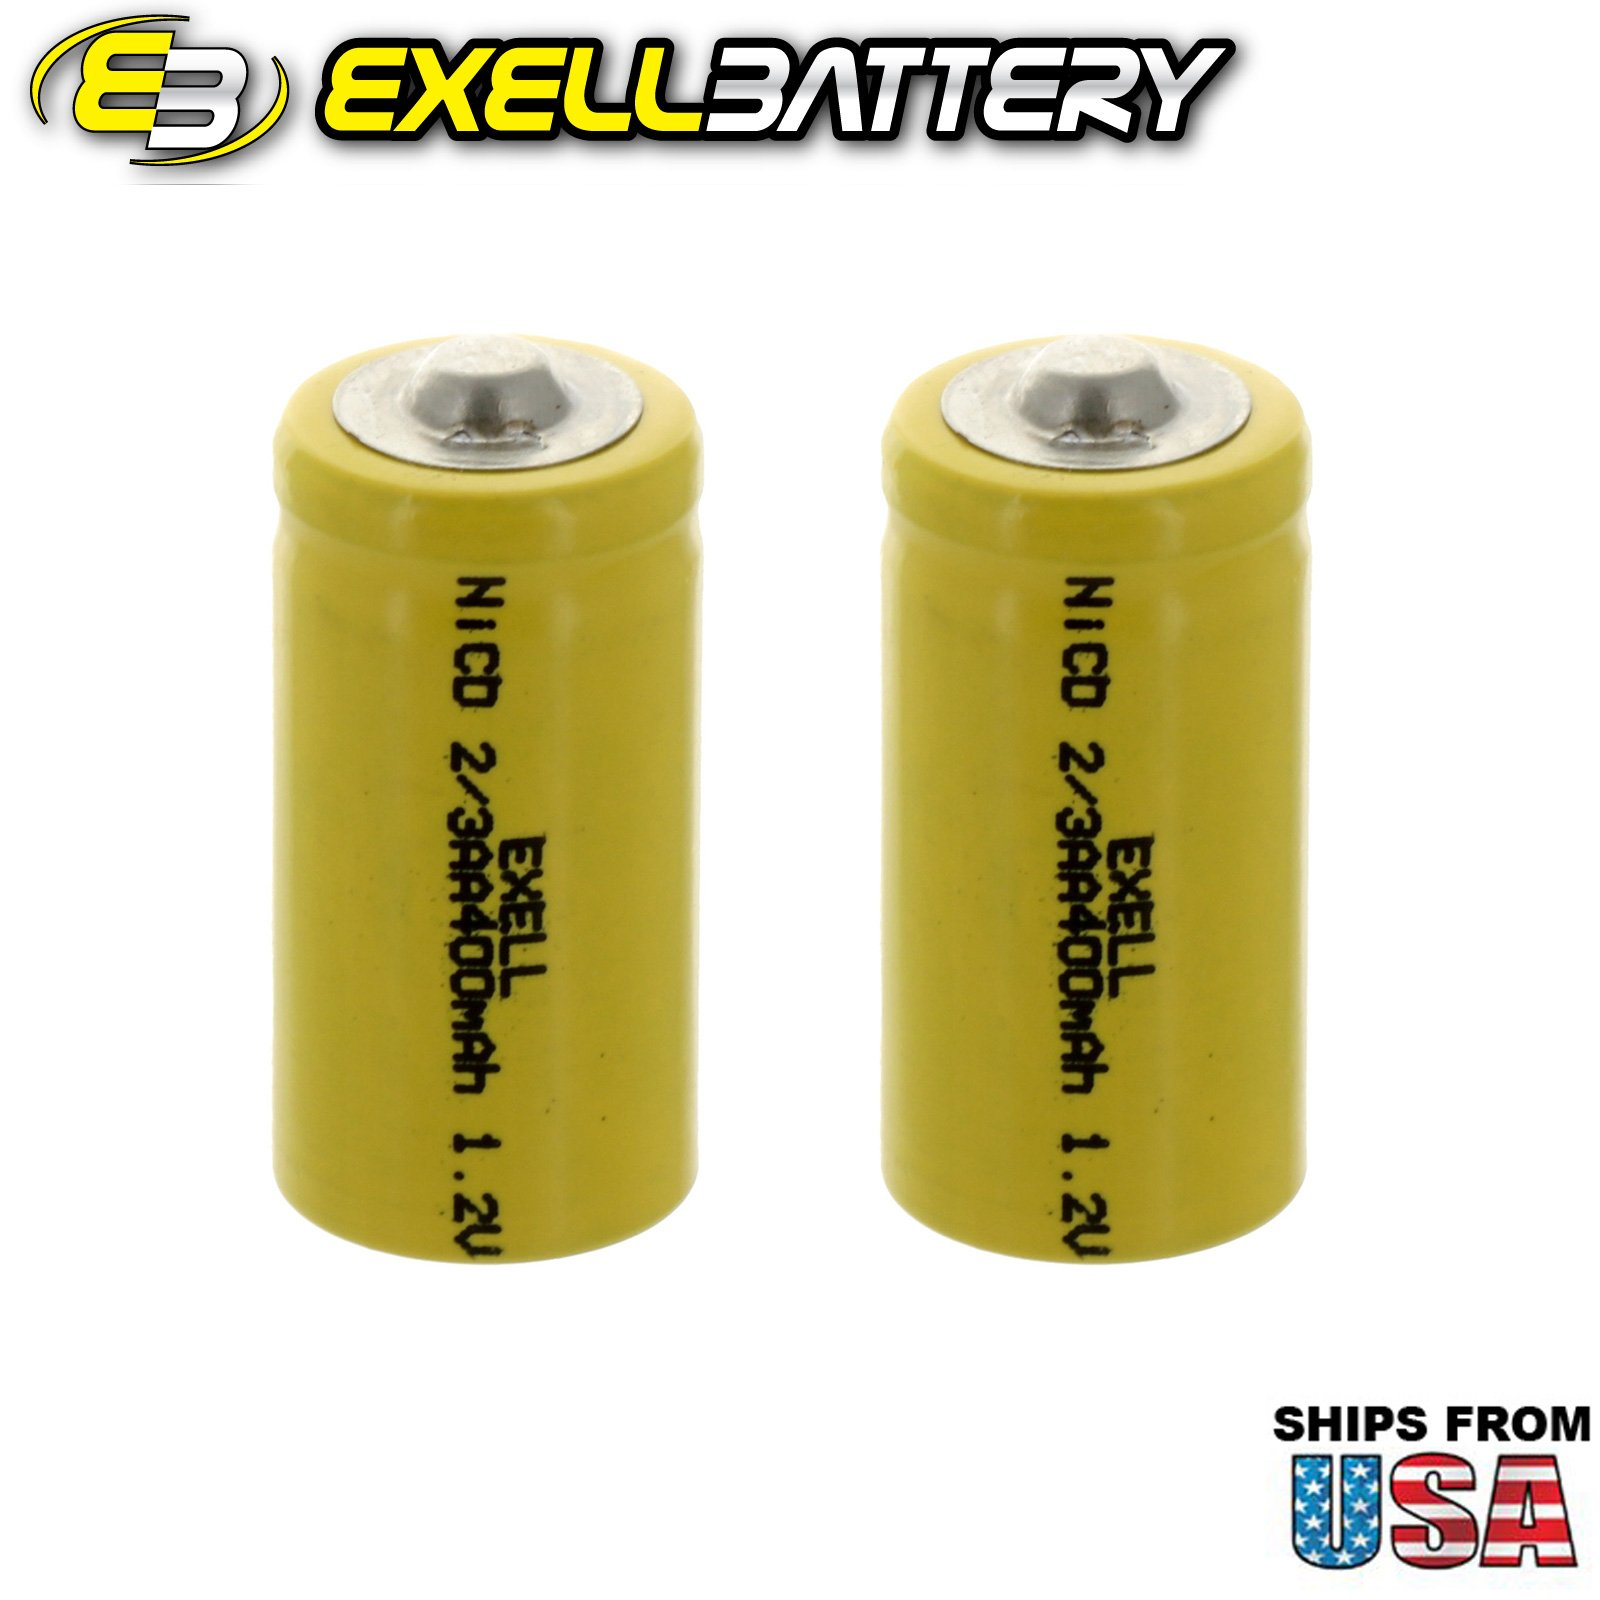 2x Exell 2/3AA 1.2V 400mAh NiCD Button Top Rechargeable Batteries for high power static applications (Telecoms, UPS and Smart grid), electric mopeds, meters, radios, RC devices, electric tools